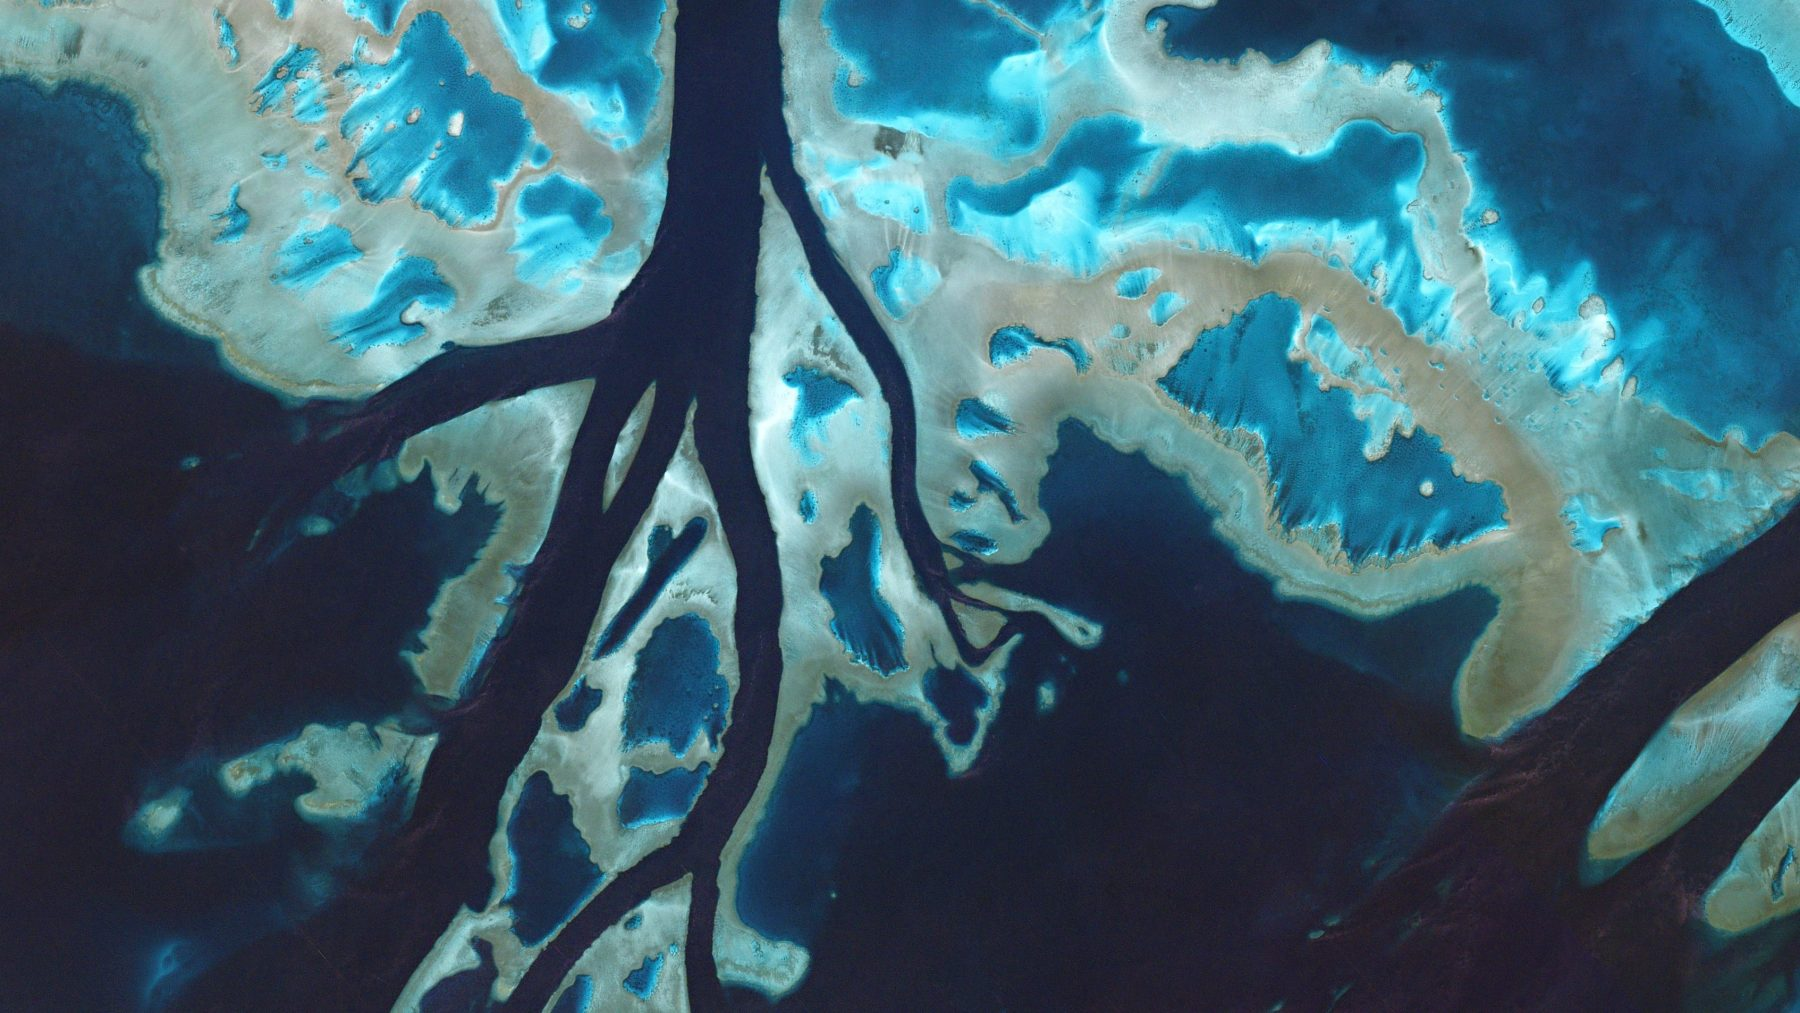 Taken on July 7, 2016, tidal channels cut through unnamed reefs off the coast of Queensland. These corals are part of the enormous Great Barrier Reef, which stretches for 1,400 miles along the coast of mainland Australia in the Coral Sea. (Courtesy Planet Labs)